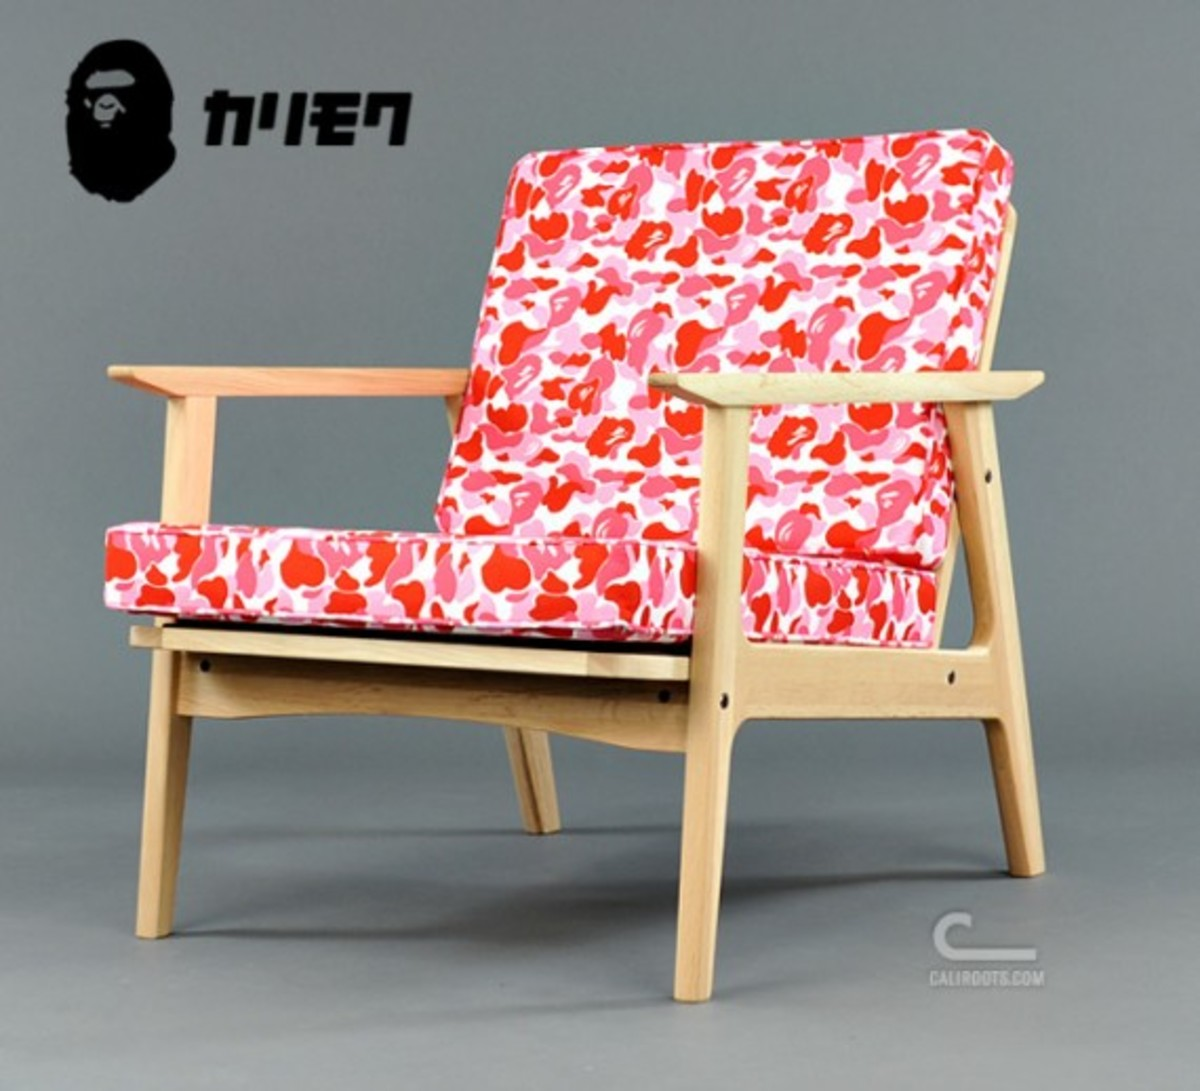 a-bathing-ape-medicom-toy-karimoku-bape-camo-furniture-21